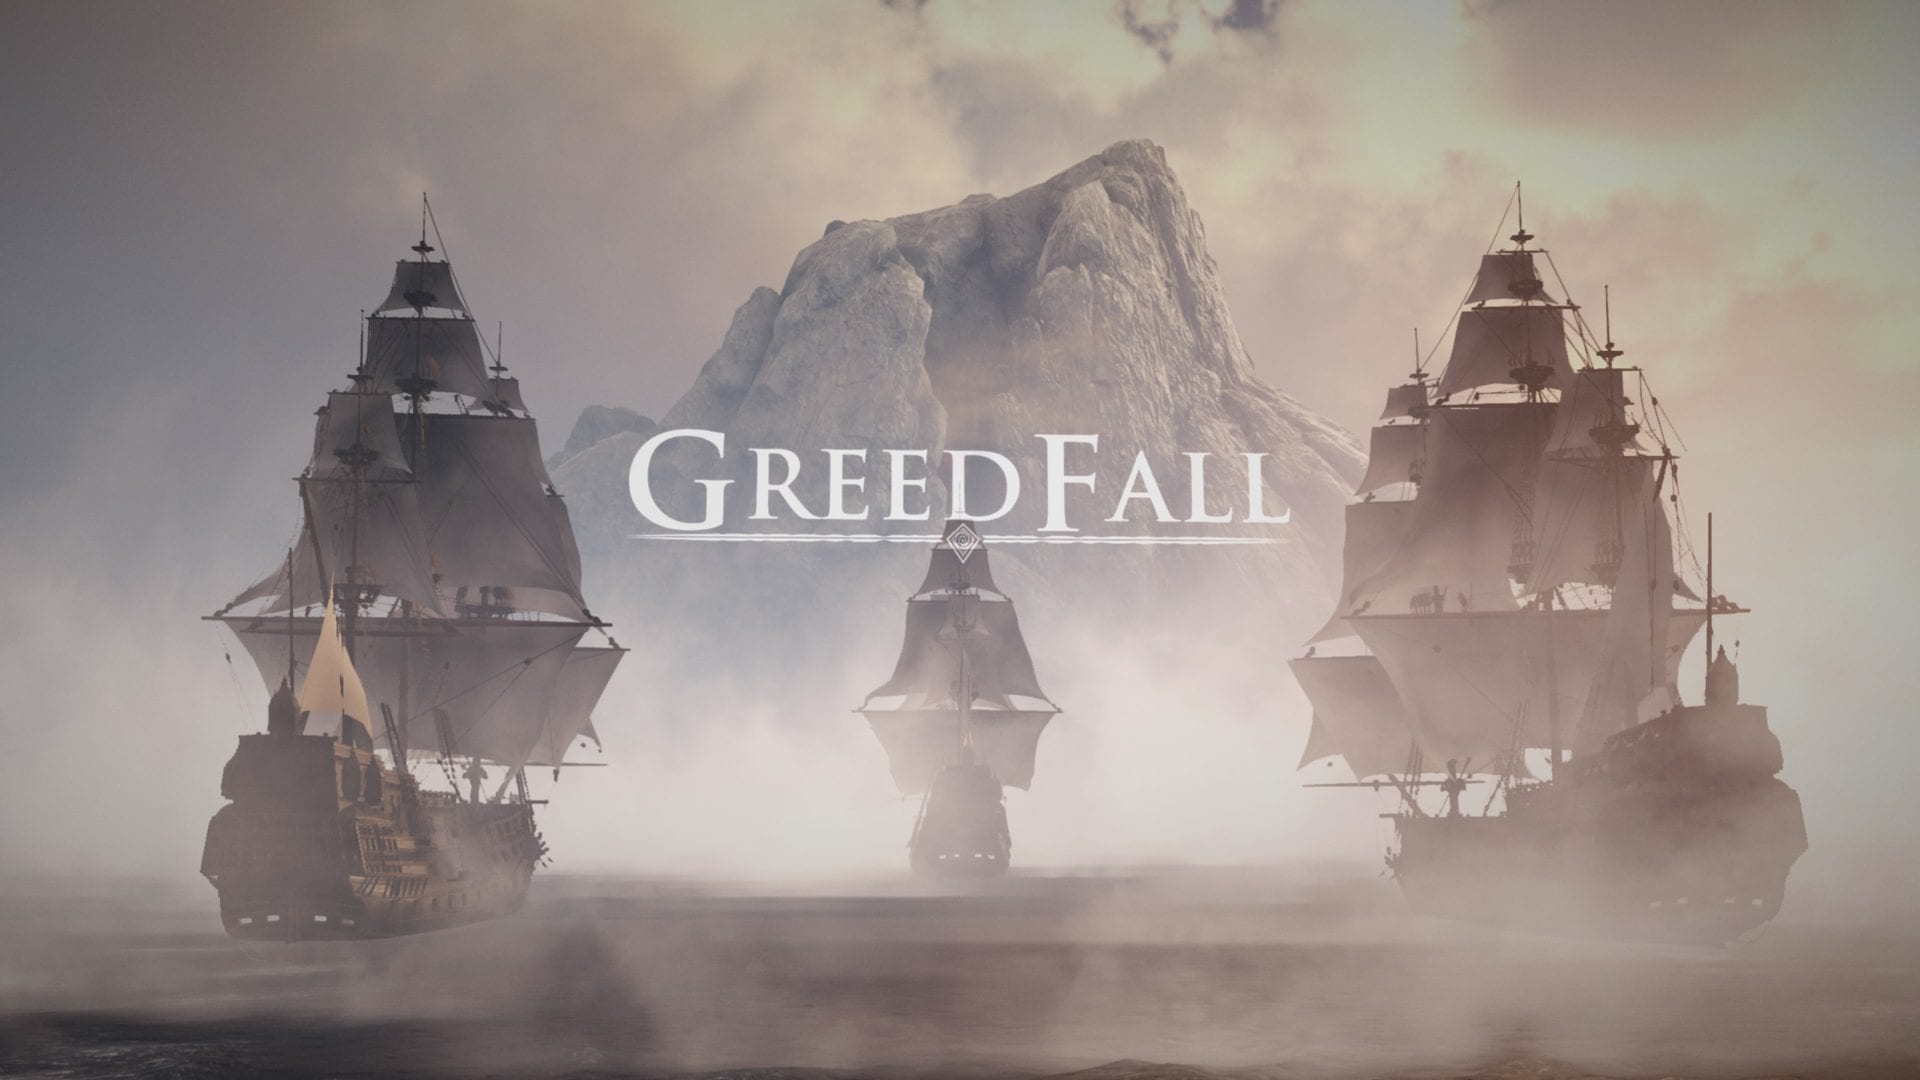 GreedFall, candles puzzle